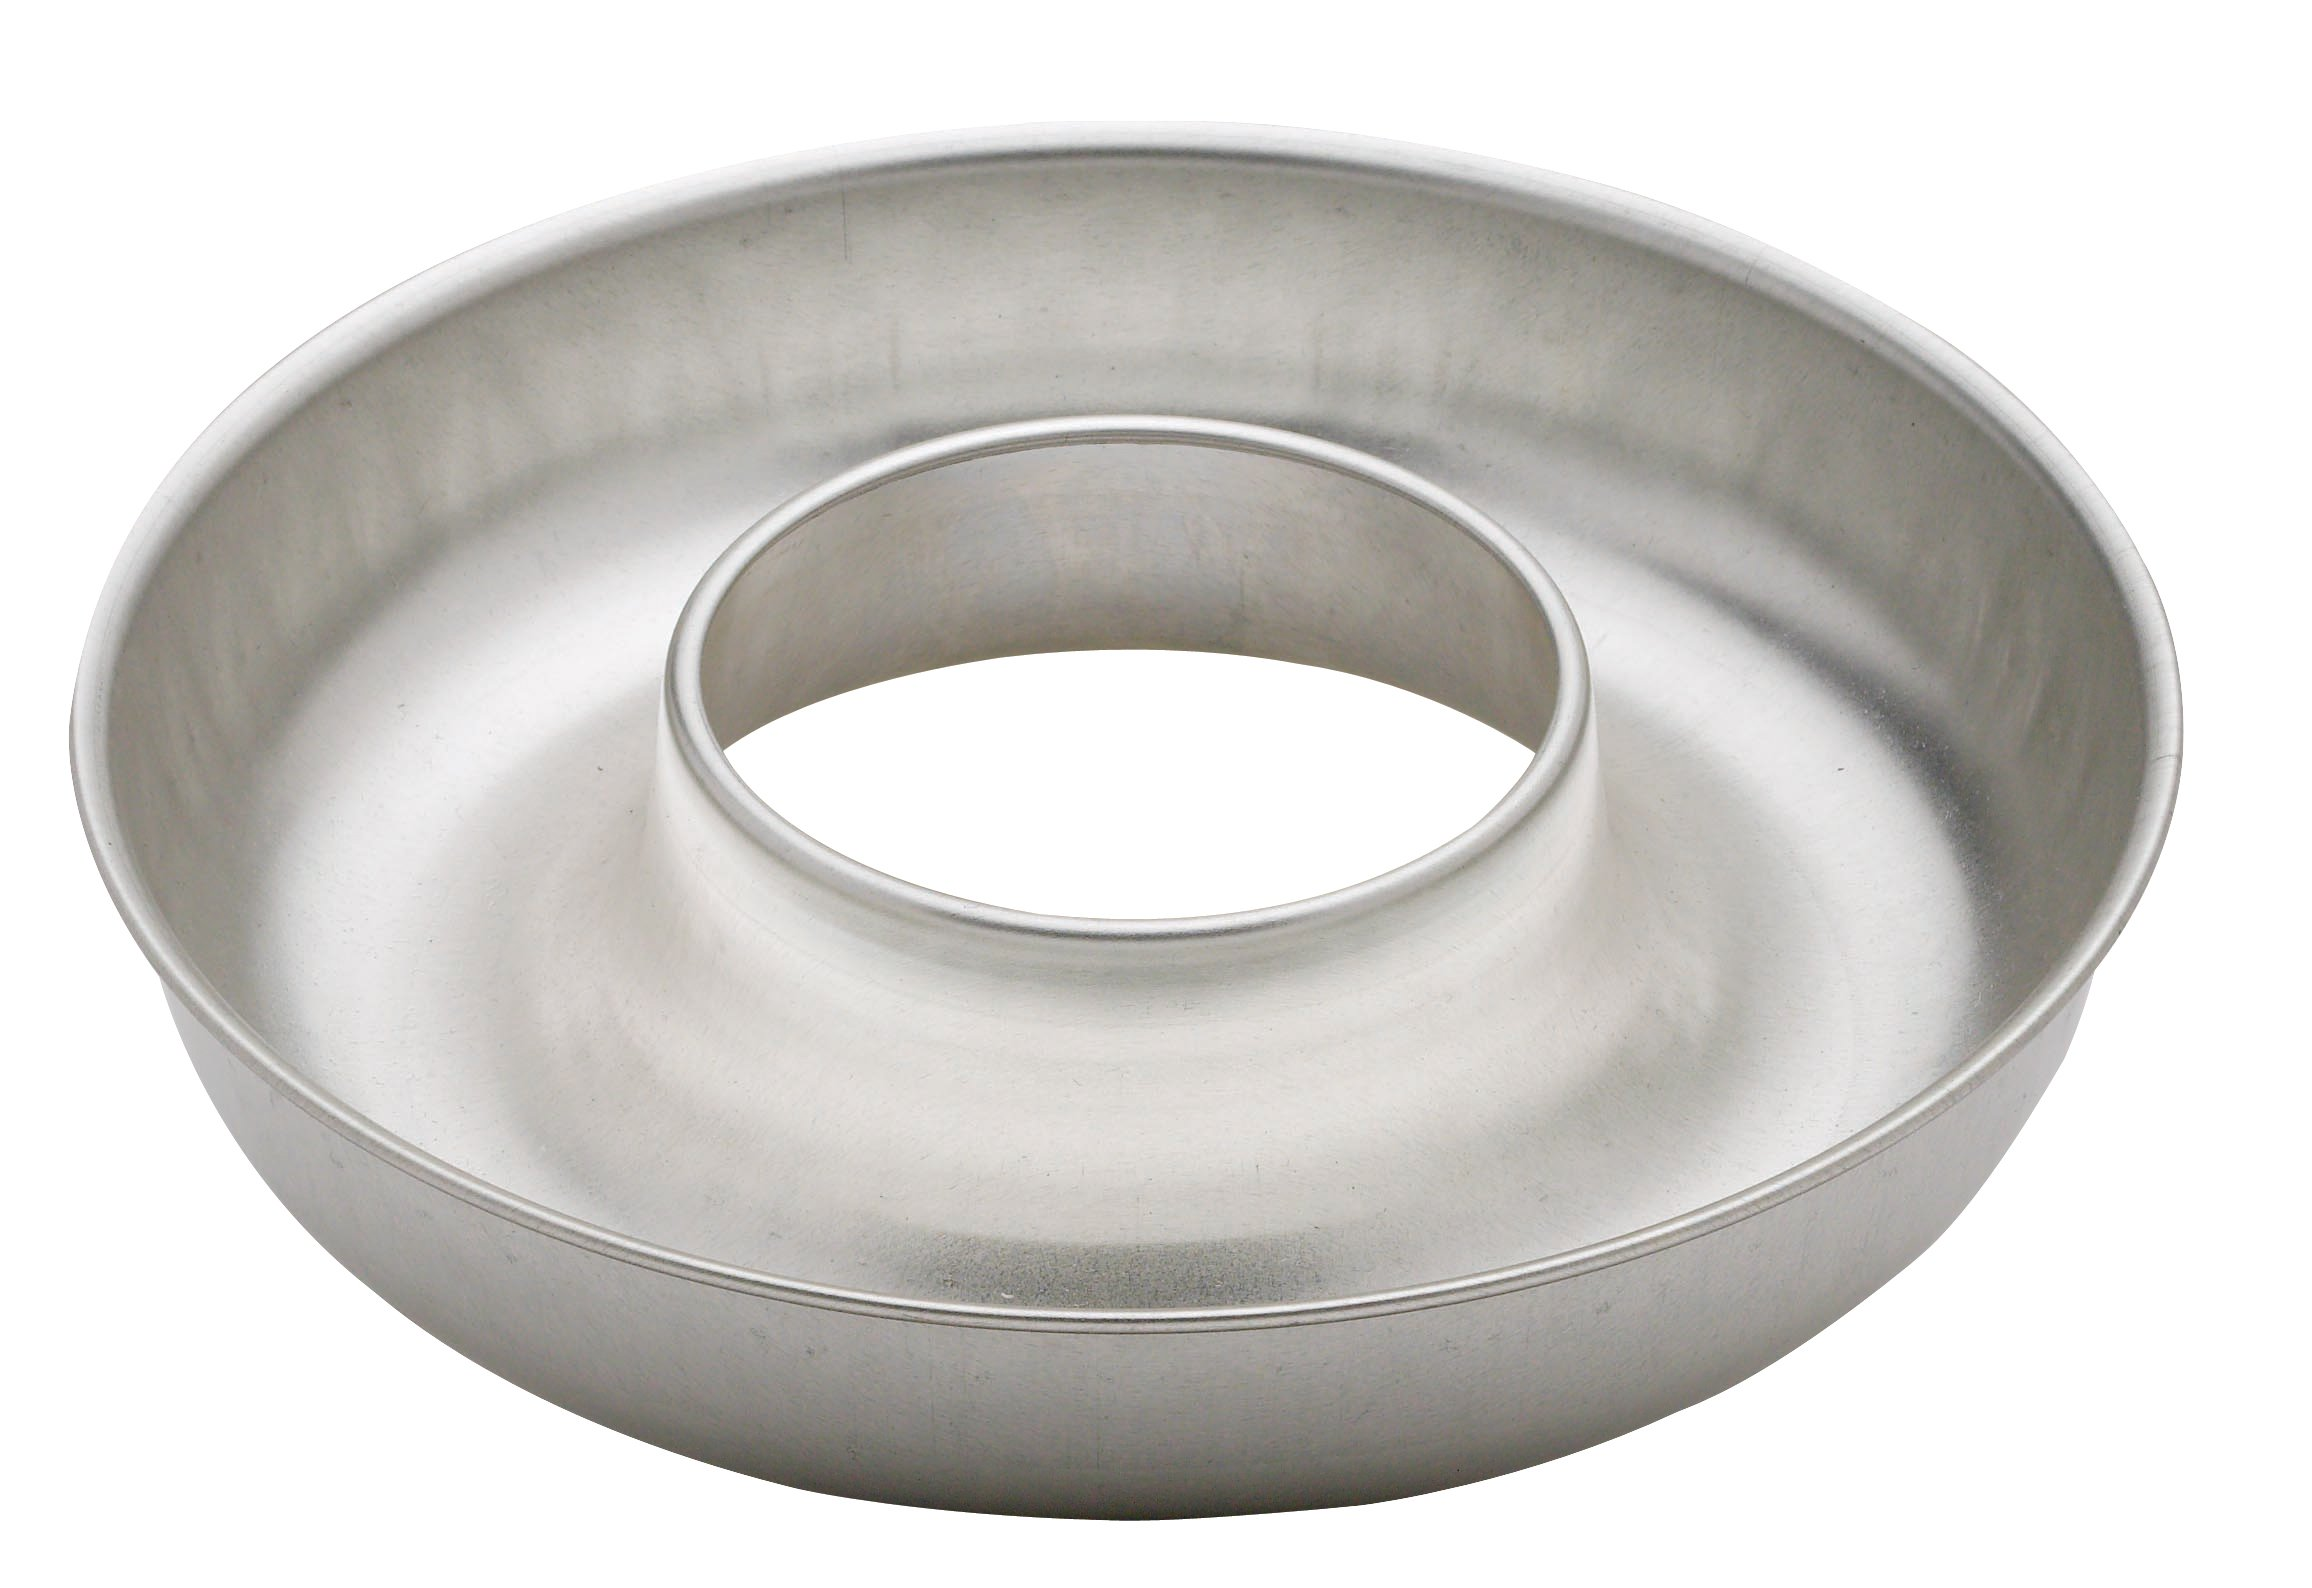 Gobel Nonstick Deep Savarin Mold, 9.75 Inch, Made in France by Gobel